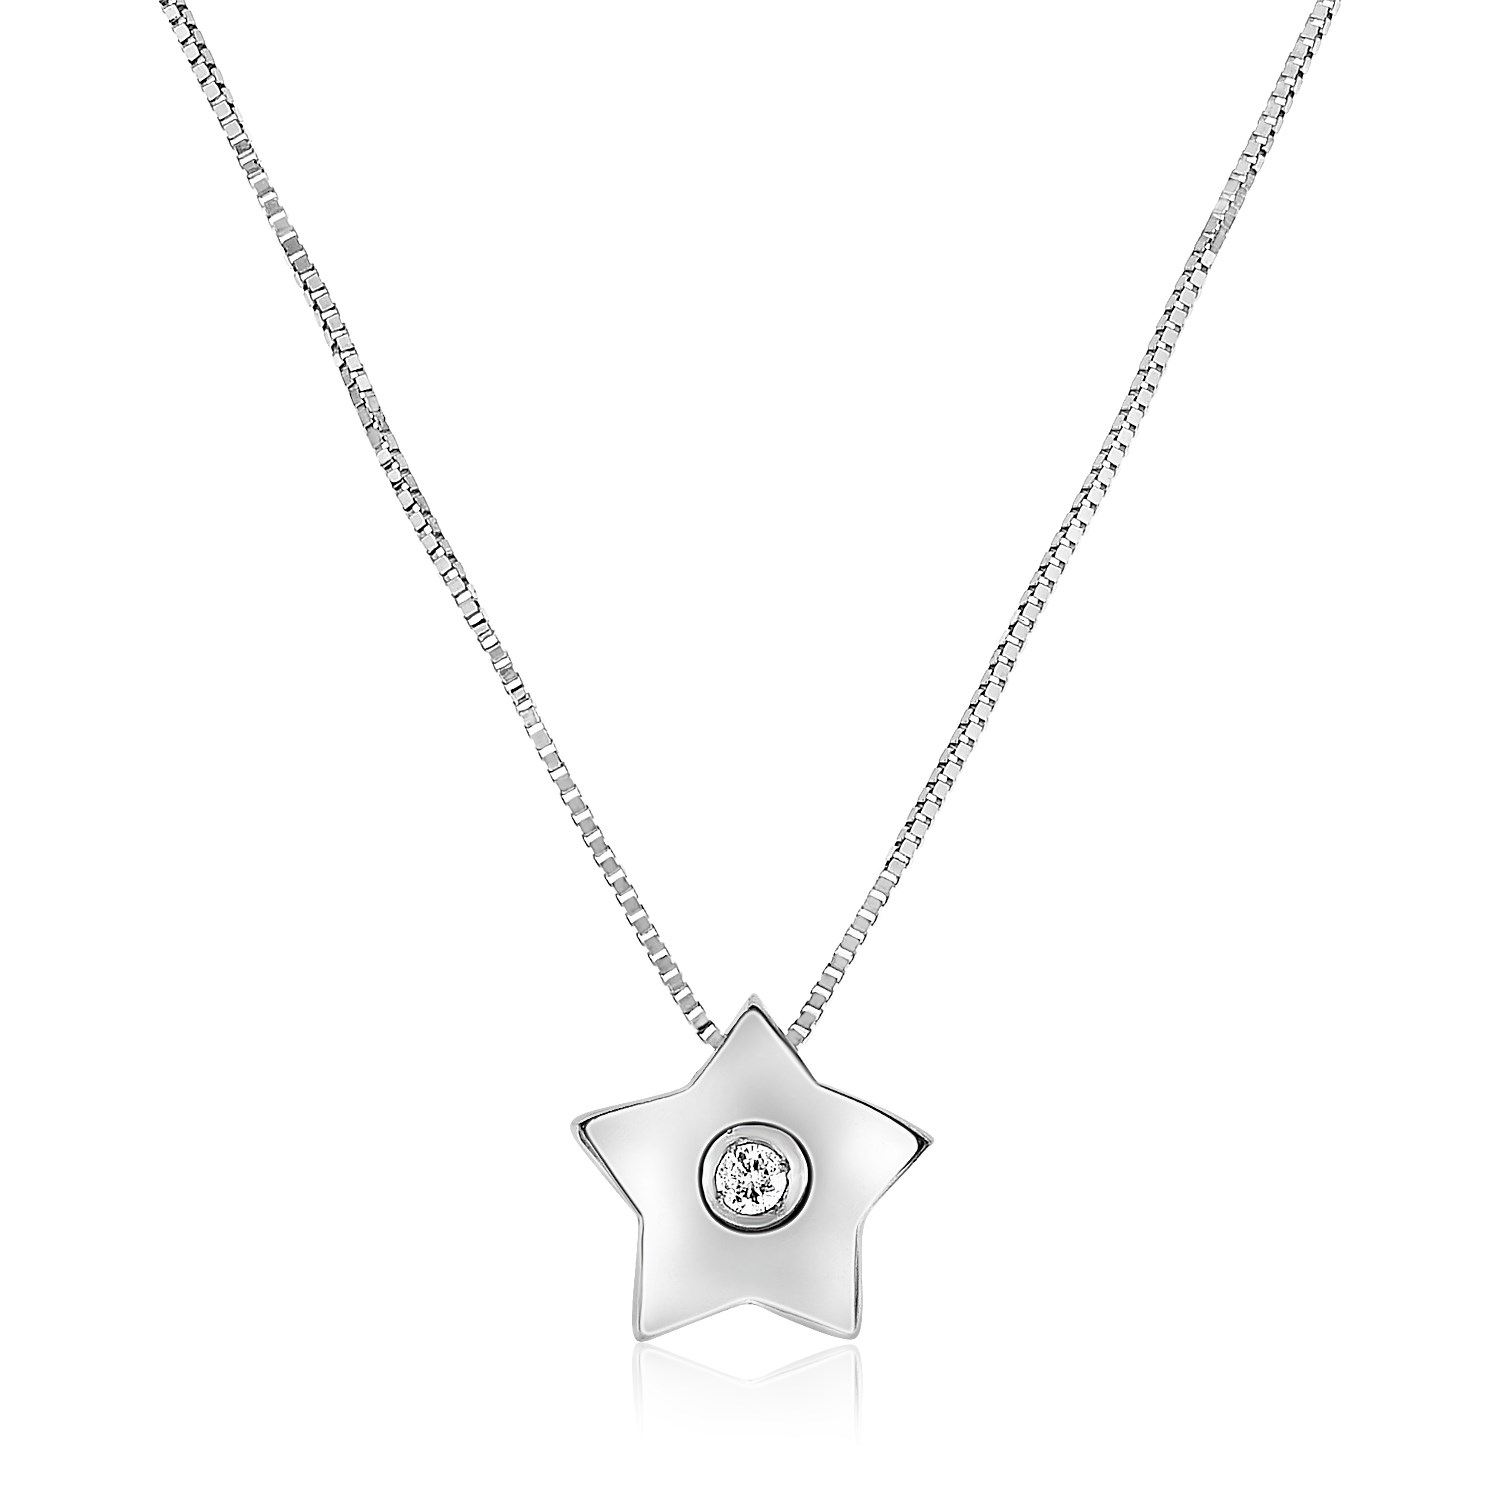 14k white gold necklace with gold and diamond star pendant aloadofball Choice Image